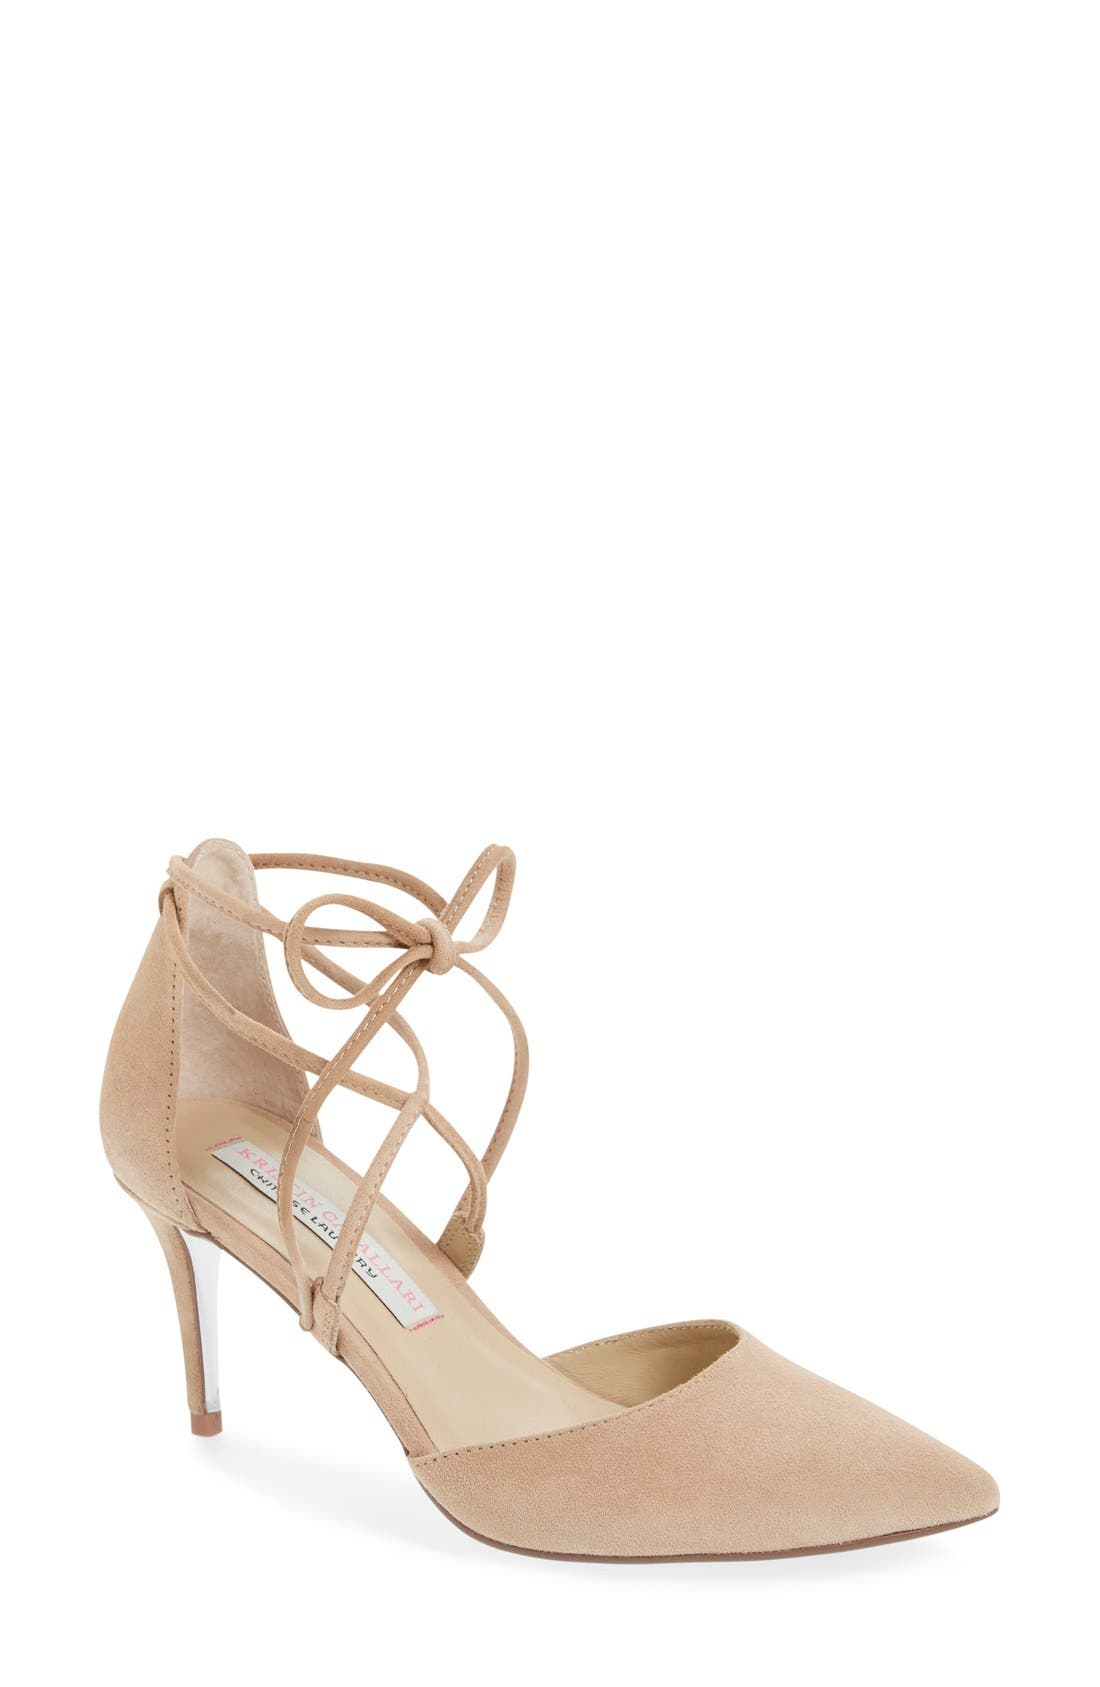 Kristin Cavallari 'Opel' Lace-Up Pointy Toe Pump (Women)